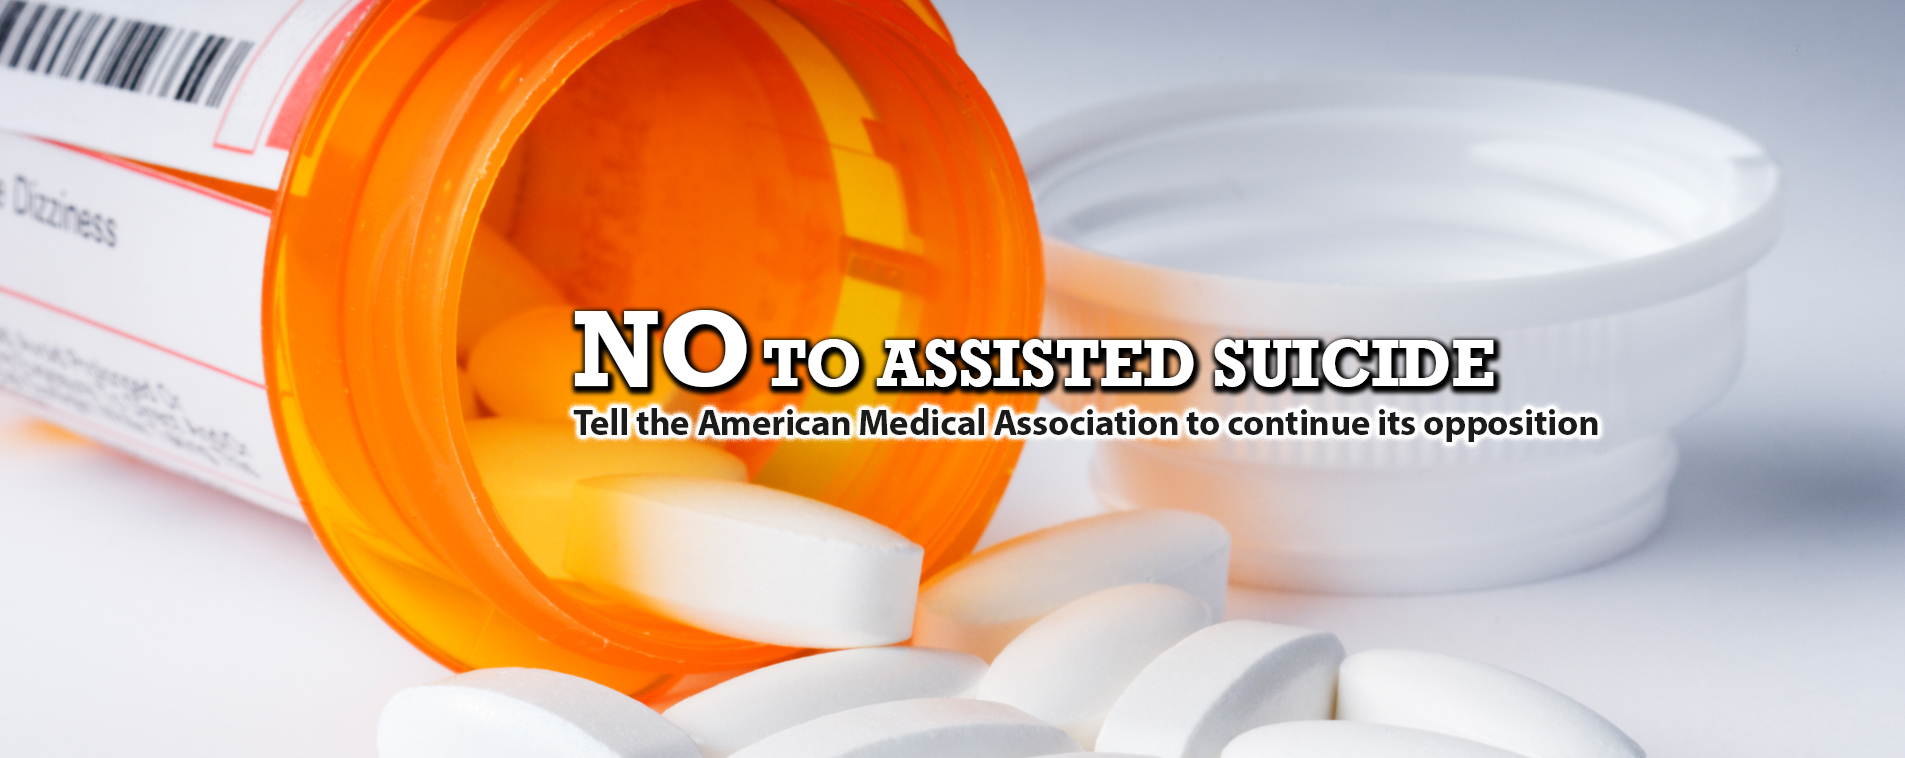 No to Assisted suicide